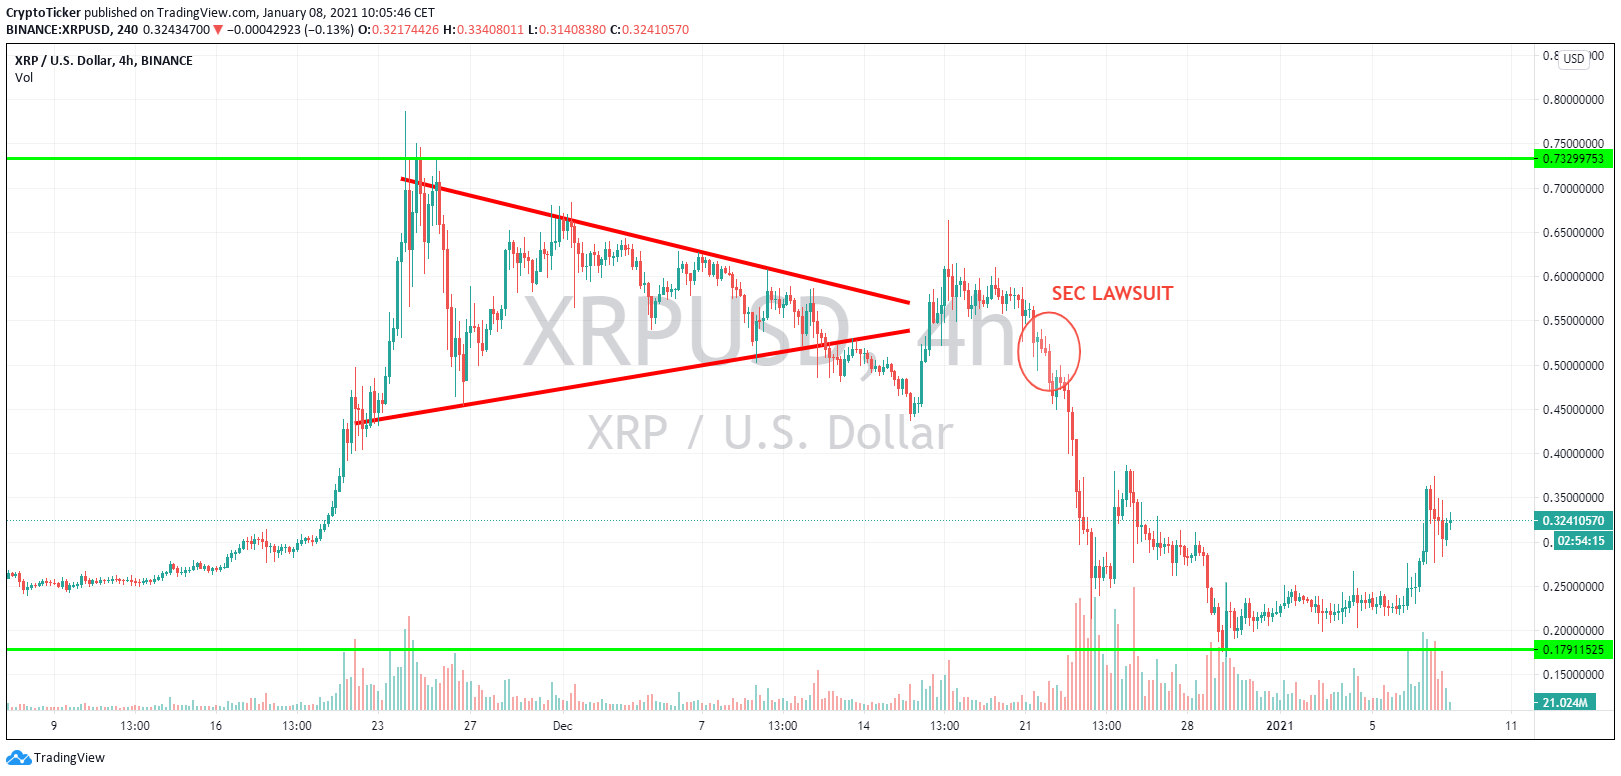 XRP/USD 4-hour chart showing the rise and the fall of XRP